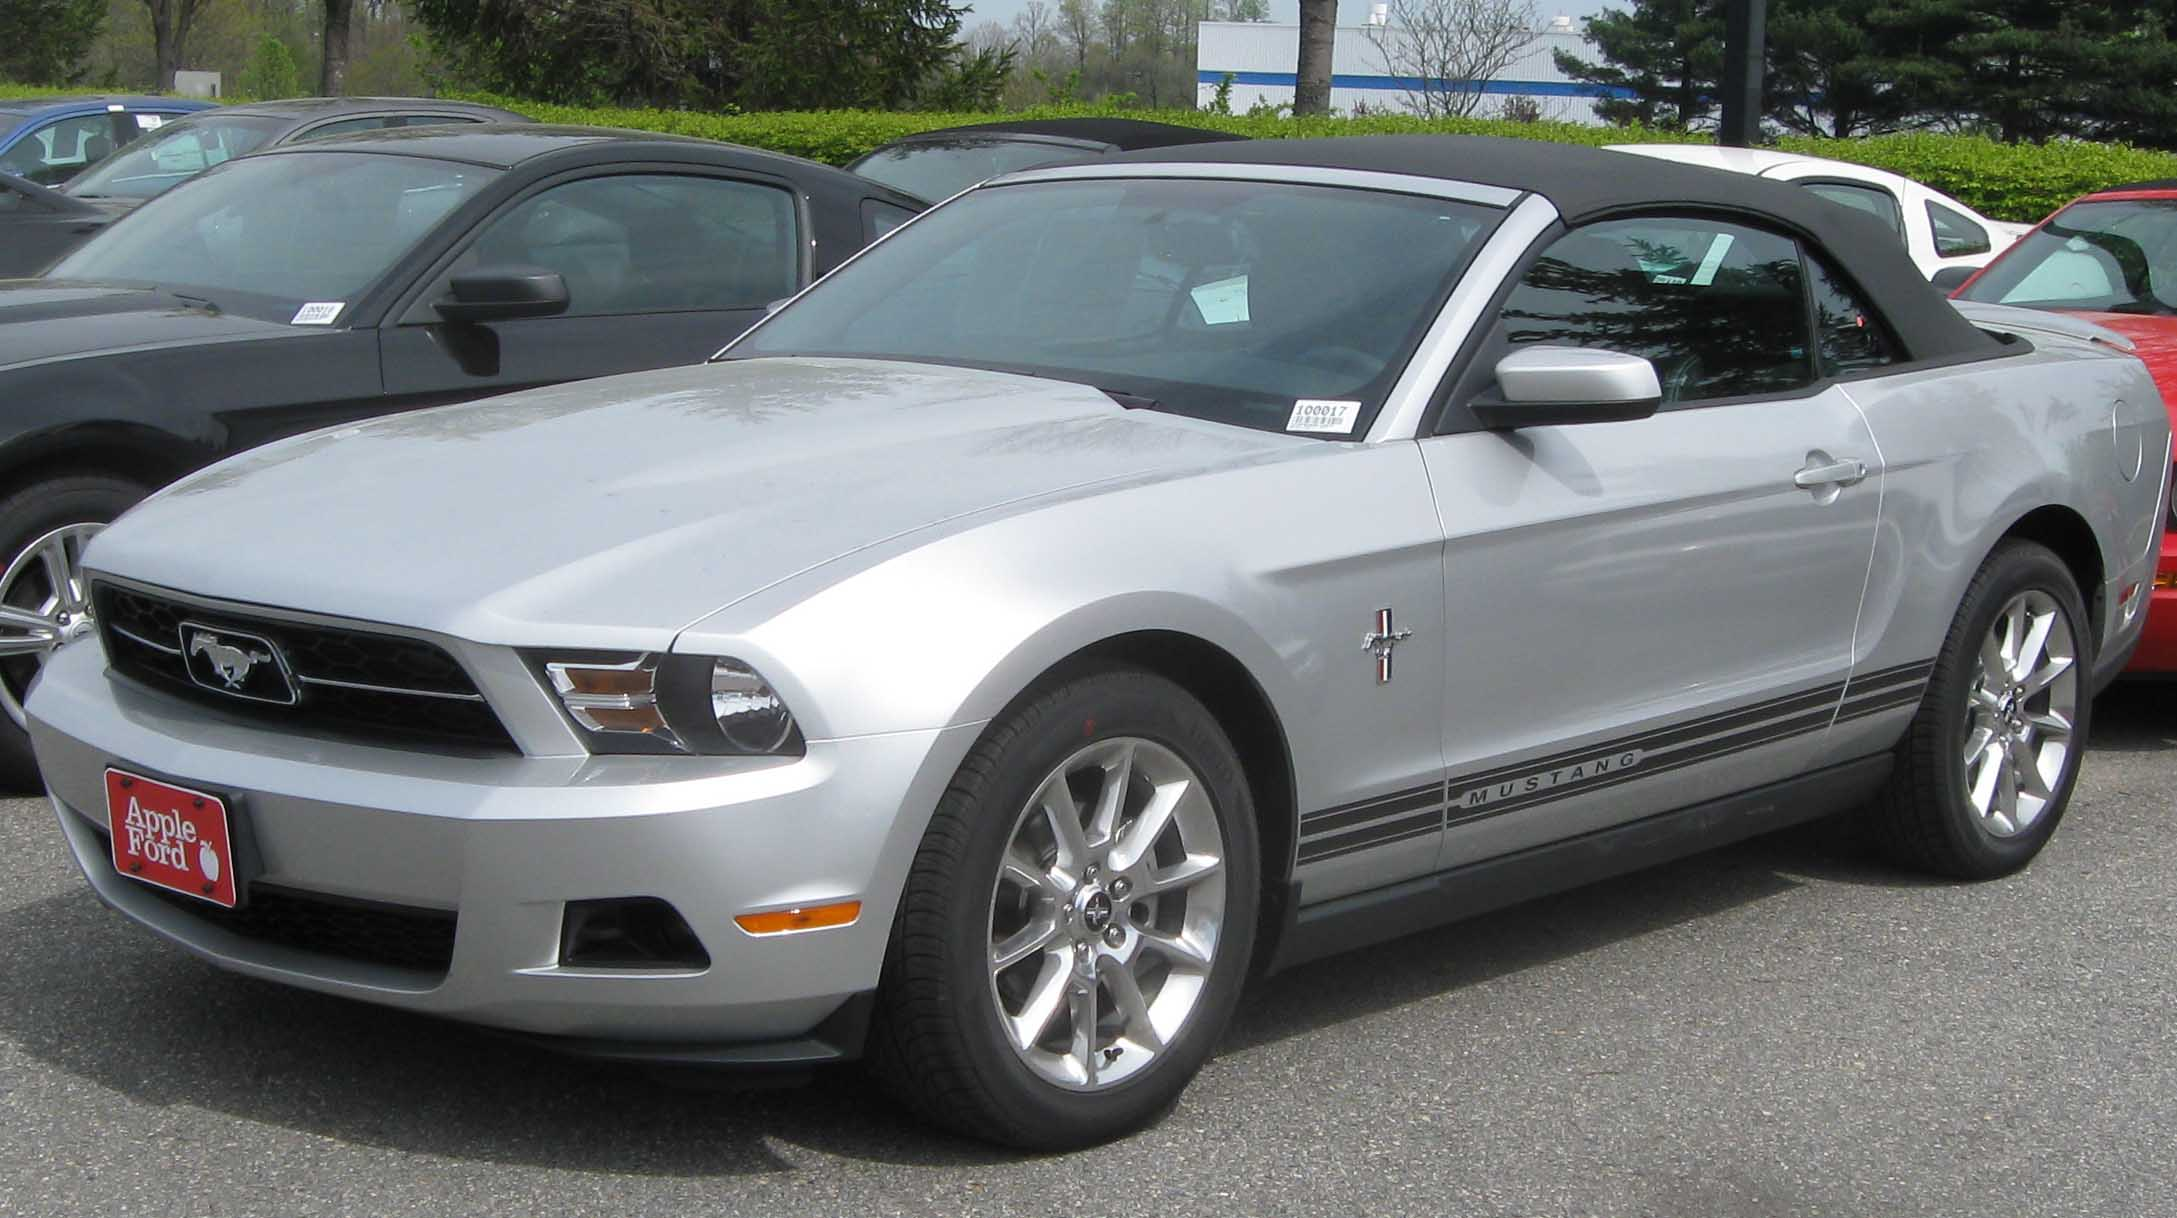 ford mustang convertible-pic. 3